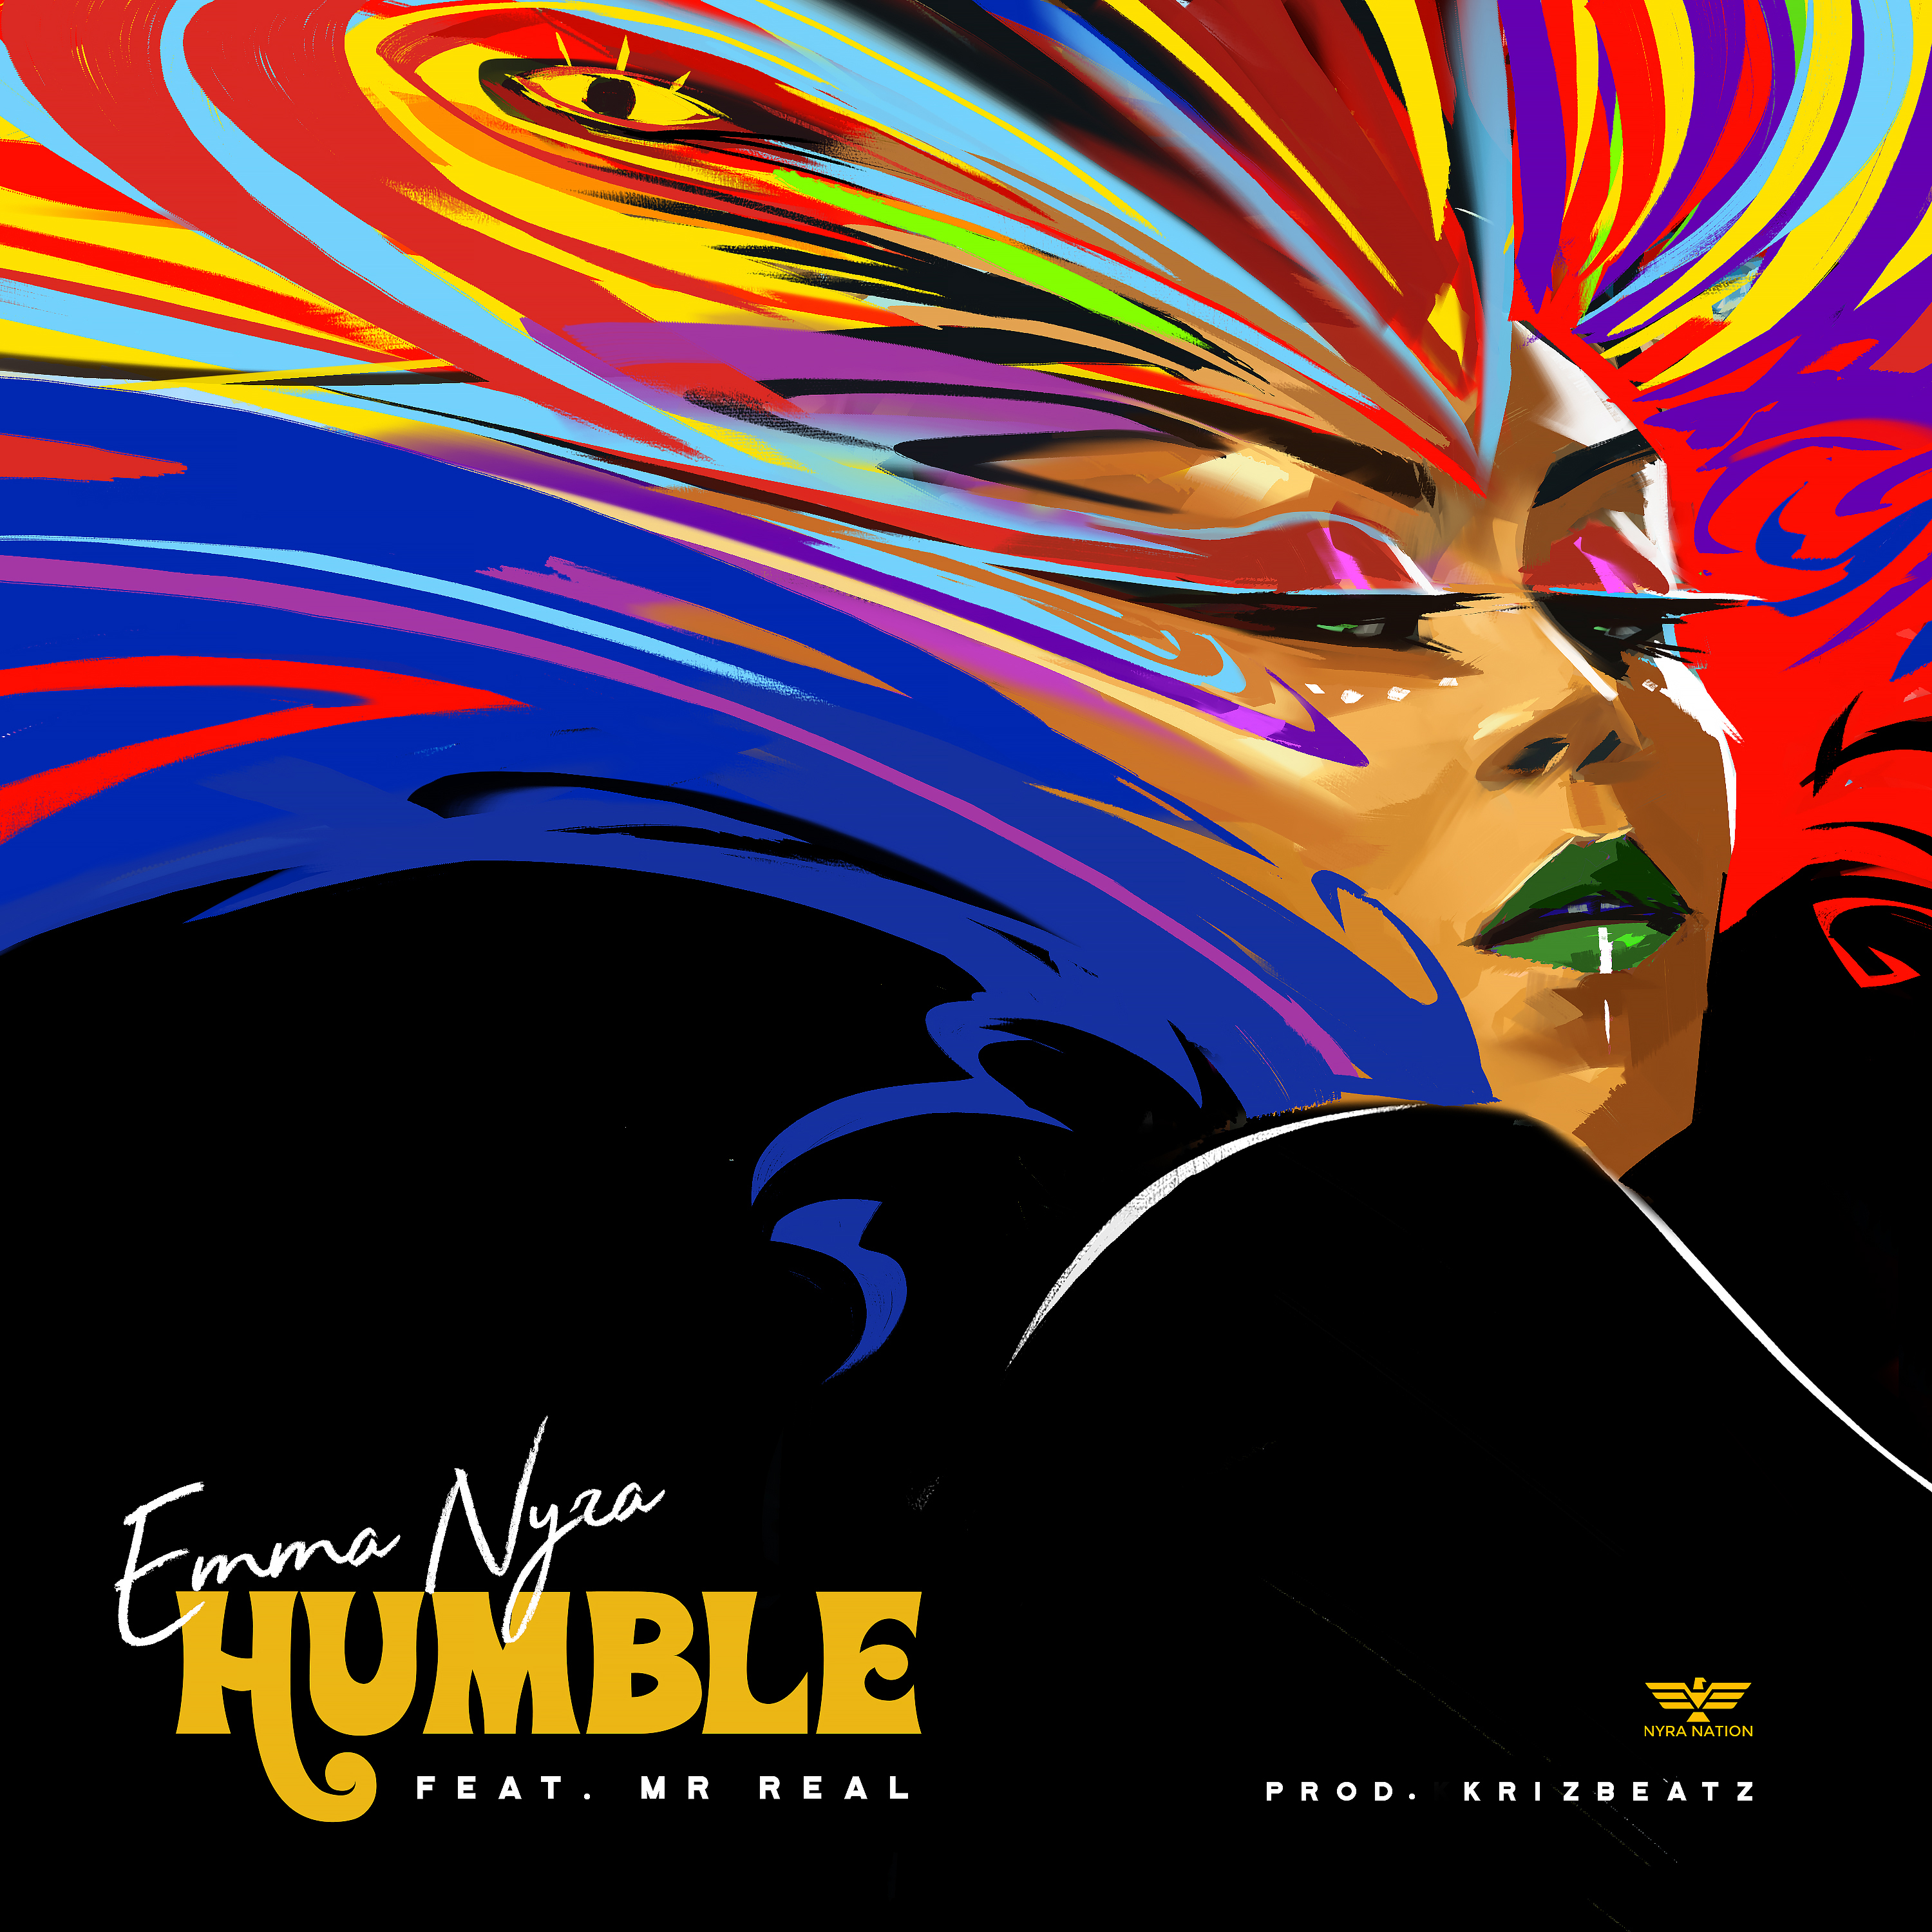 New Music: Emma Nyra feat. Mr. Real – Humble